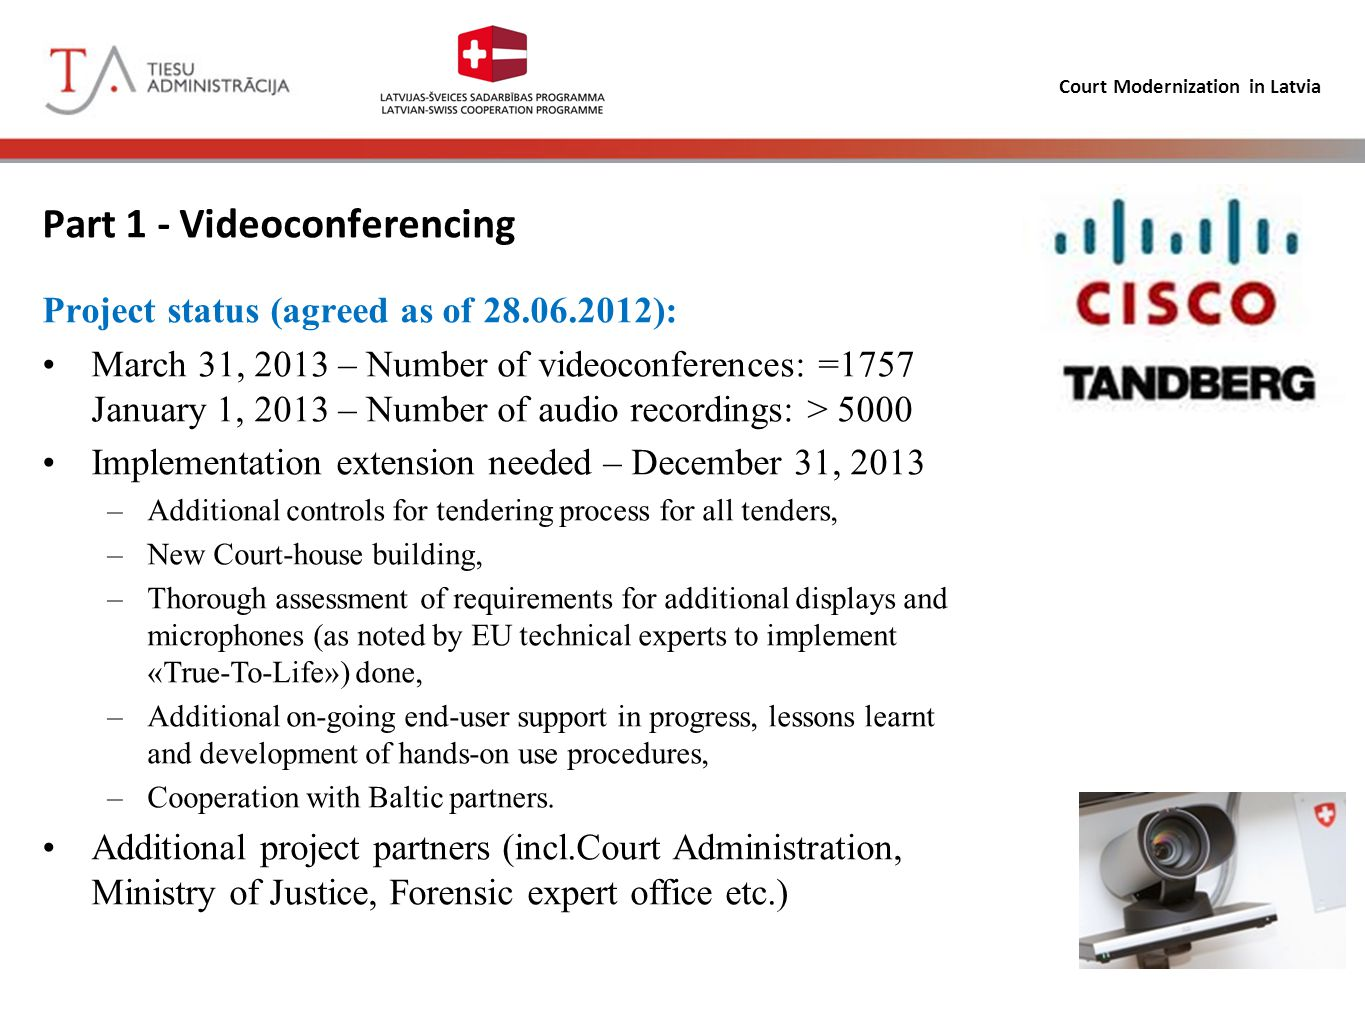 Court Modernization in Latvia Part 1 - Videoconferencing Project status (agreed as of 28.06.2012): March 31, 2013 – Number of videoconferences: =1757